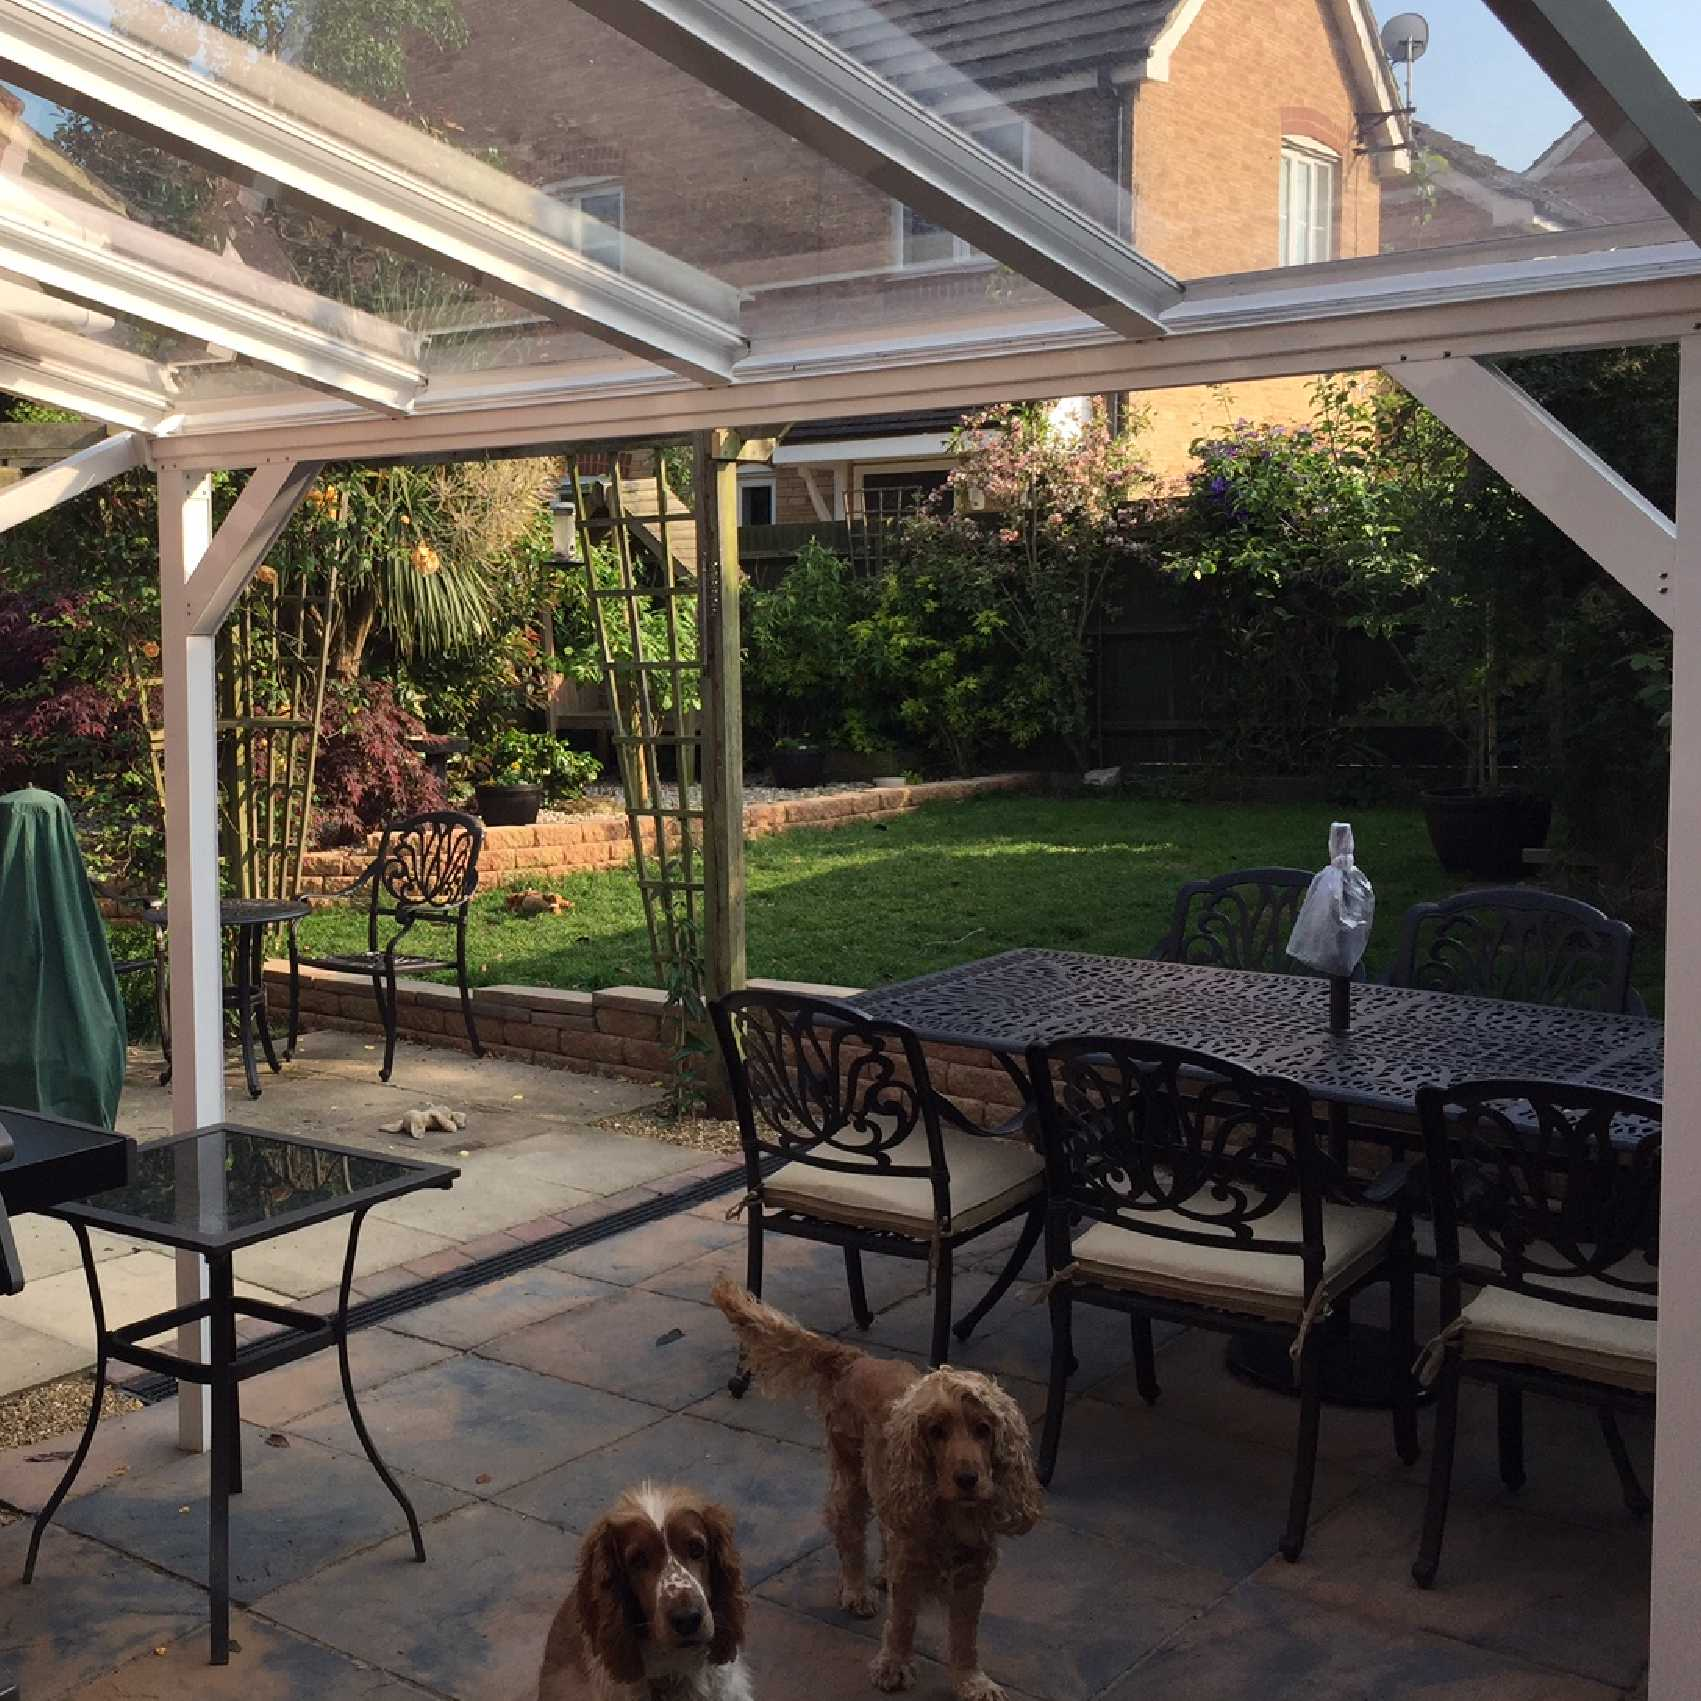 Affordable Omega Smart White Lean-To Canopy with 6mm Glass Clear Plate Polycarbonate Glazing - 8.4m (W) x 1.5m (P), (4) Supporting Posts